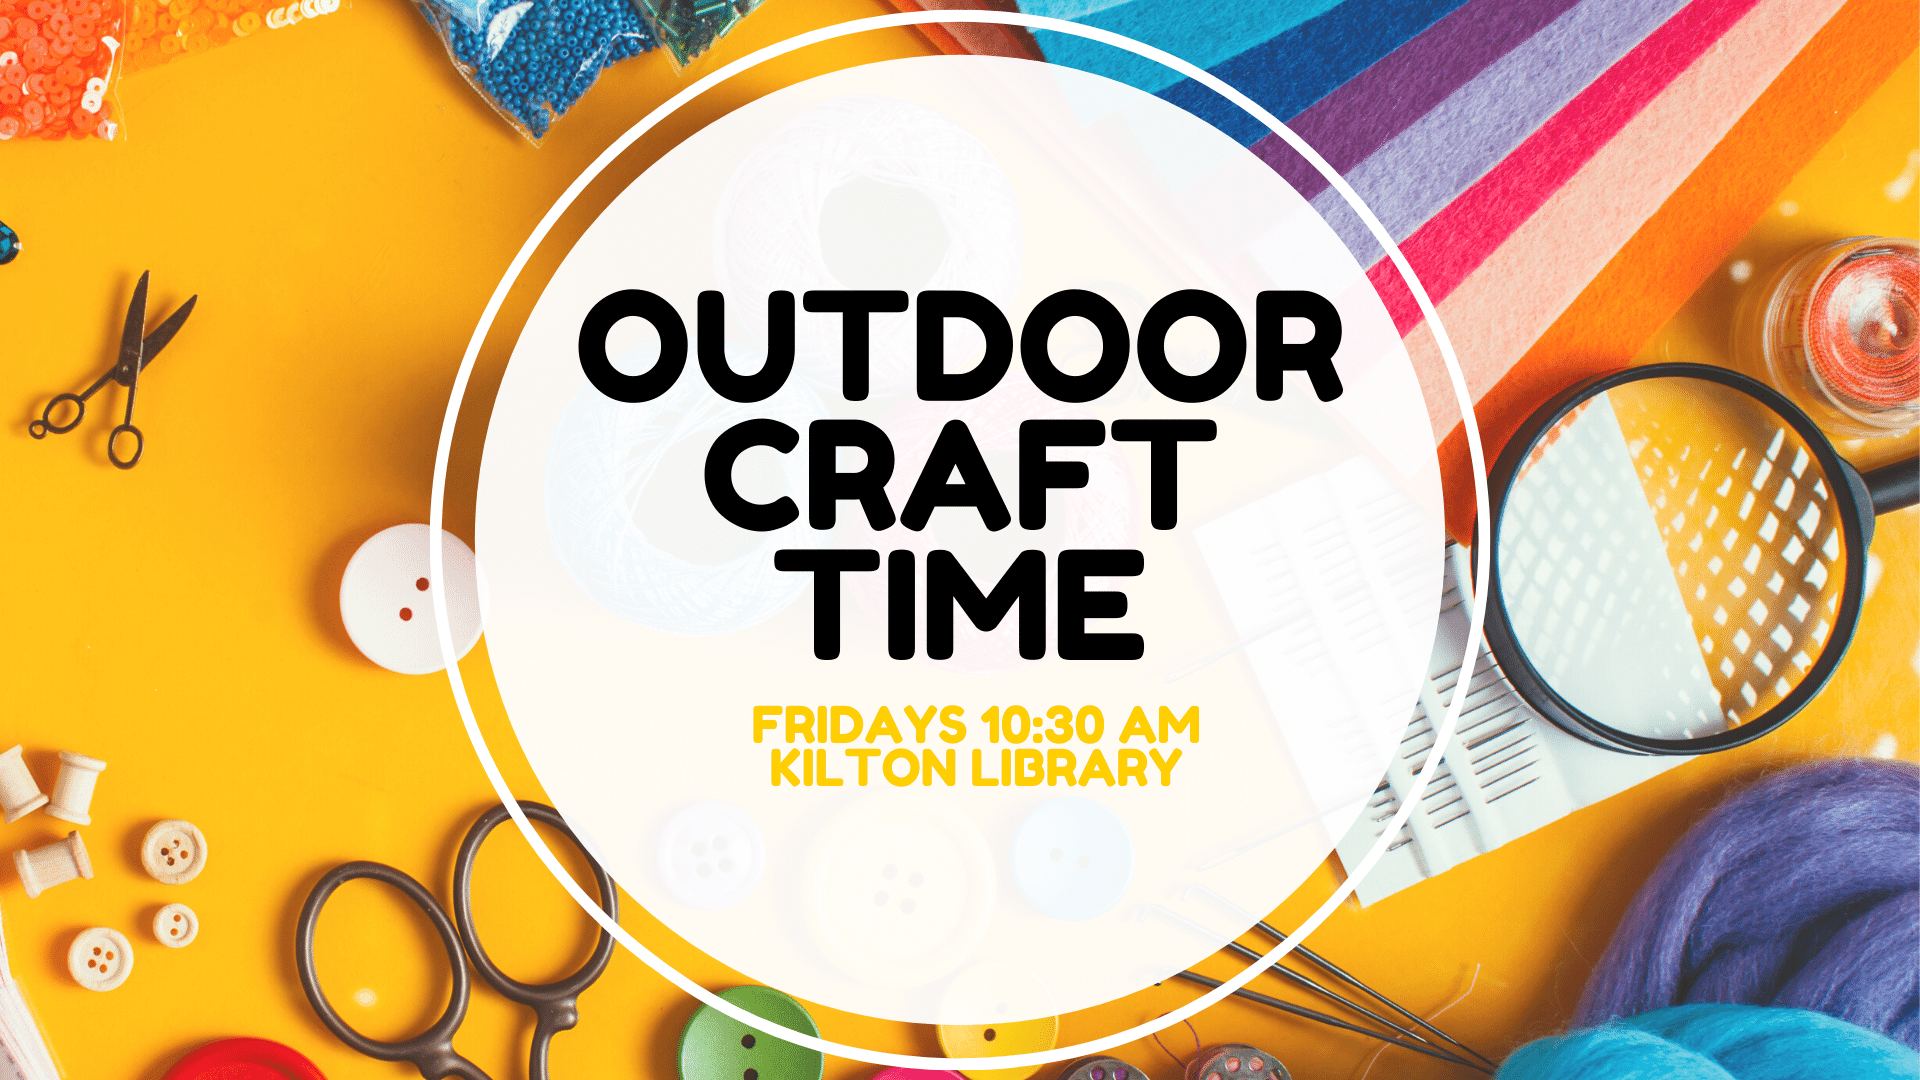 Outdoor Craft Time Fridays @ 10:30 AM Kilton Library